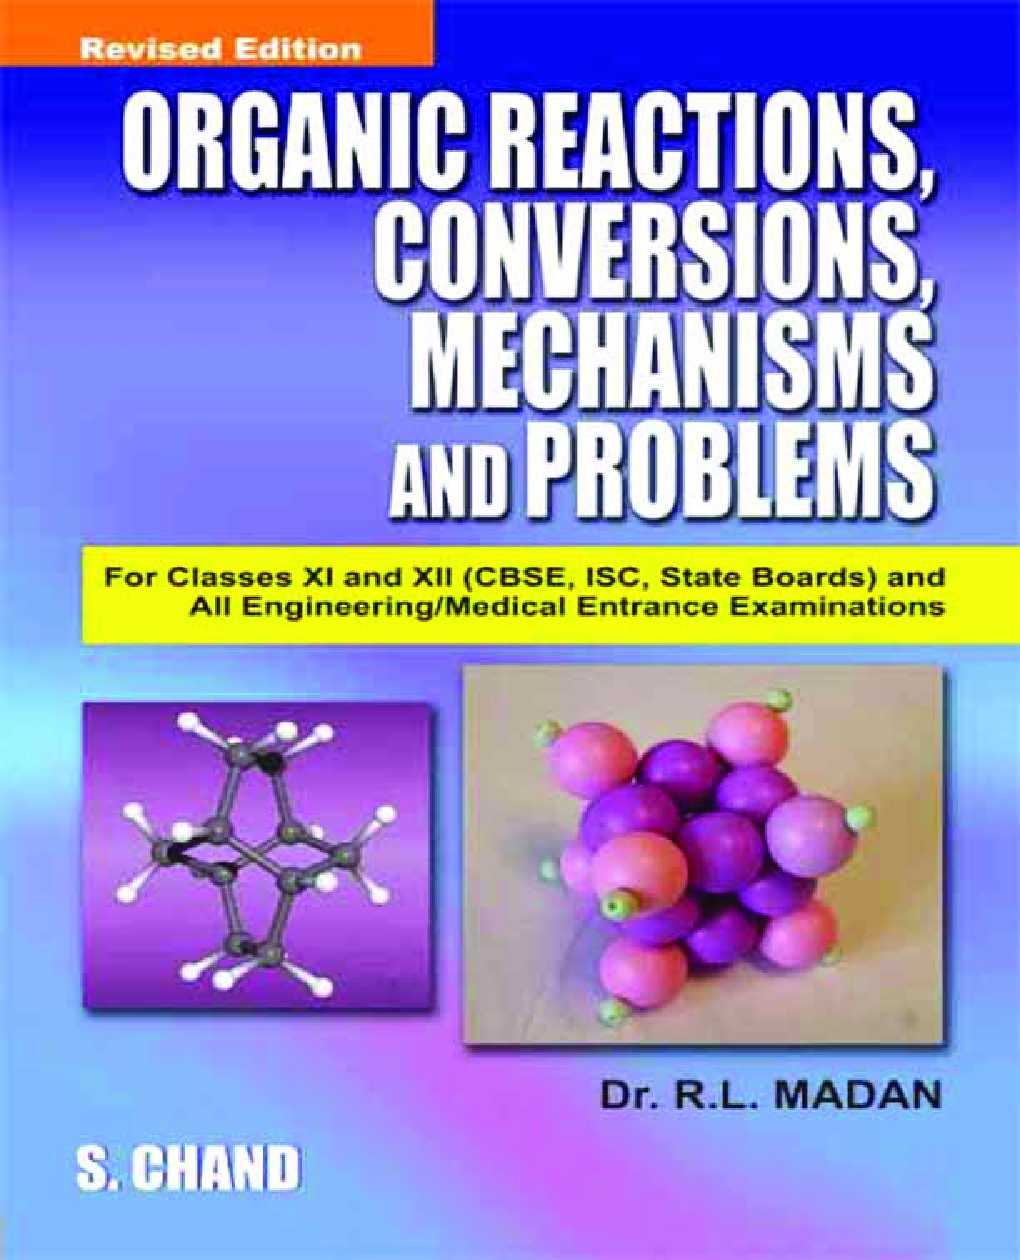 Organic Reactions, Conversions, Mechanisms And Problems - Page 1